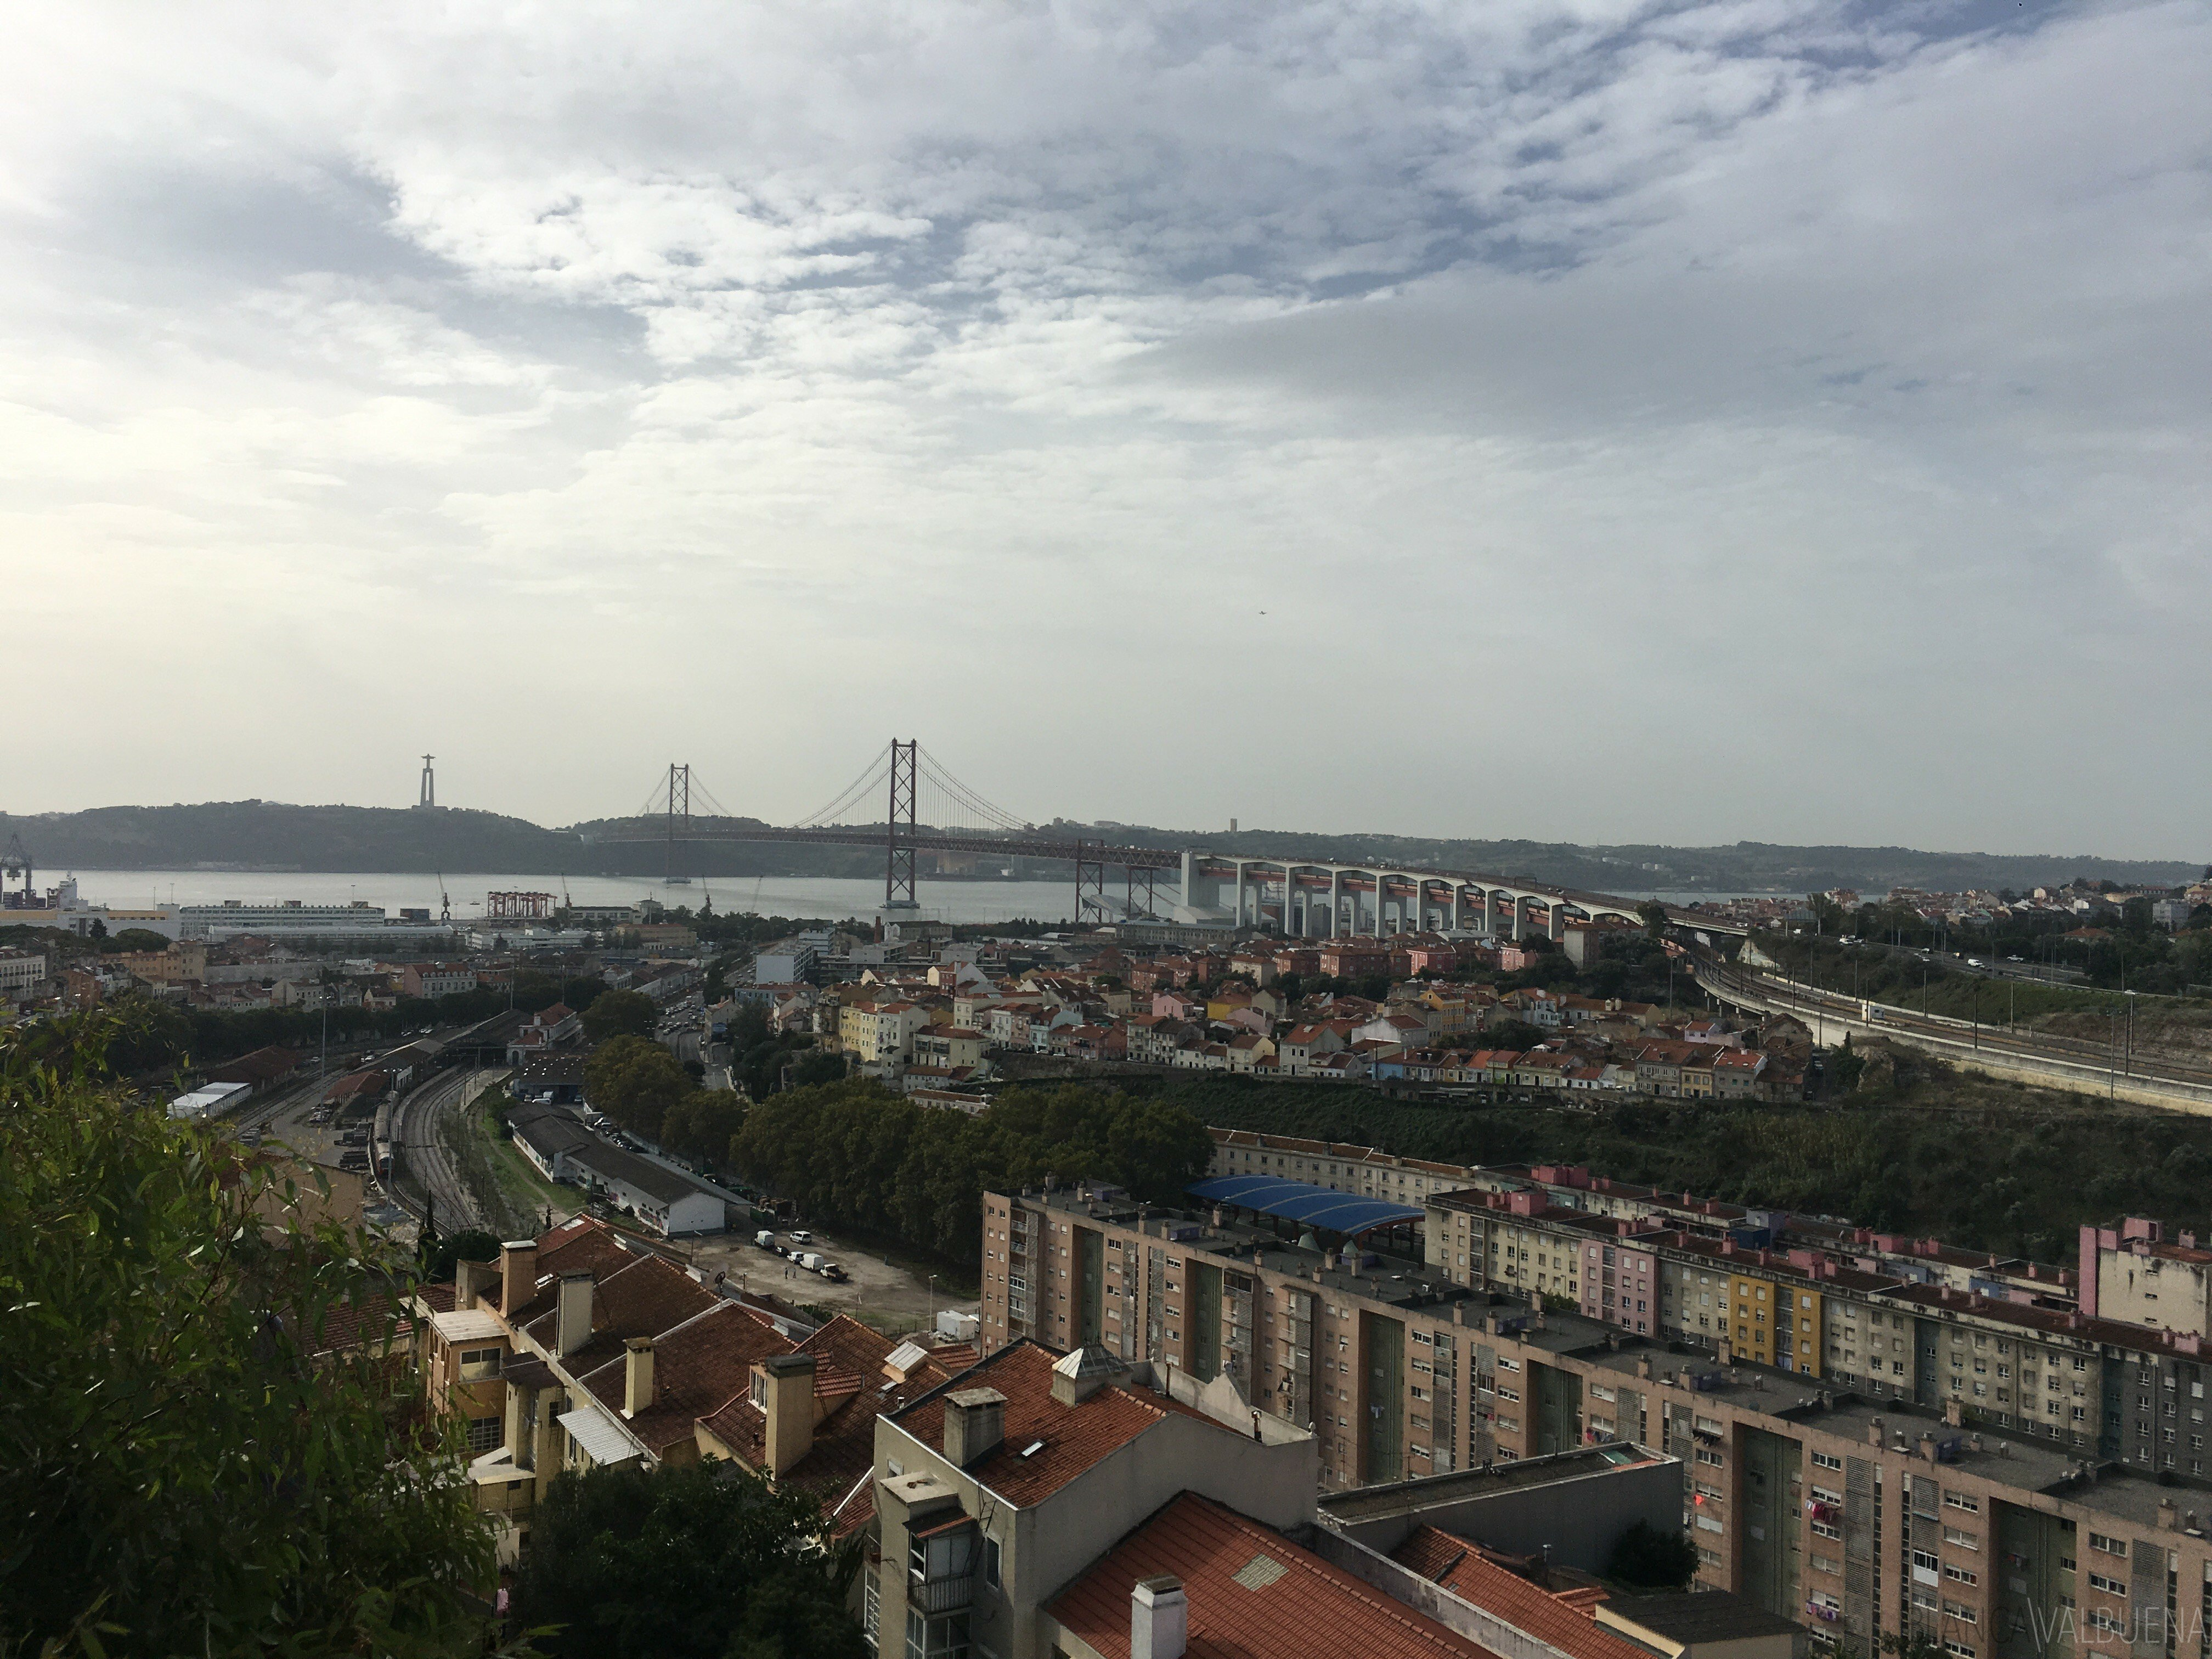 Prazeres Cemetery has a great view of the April 25 Bridge